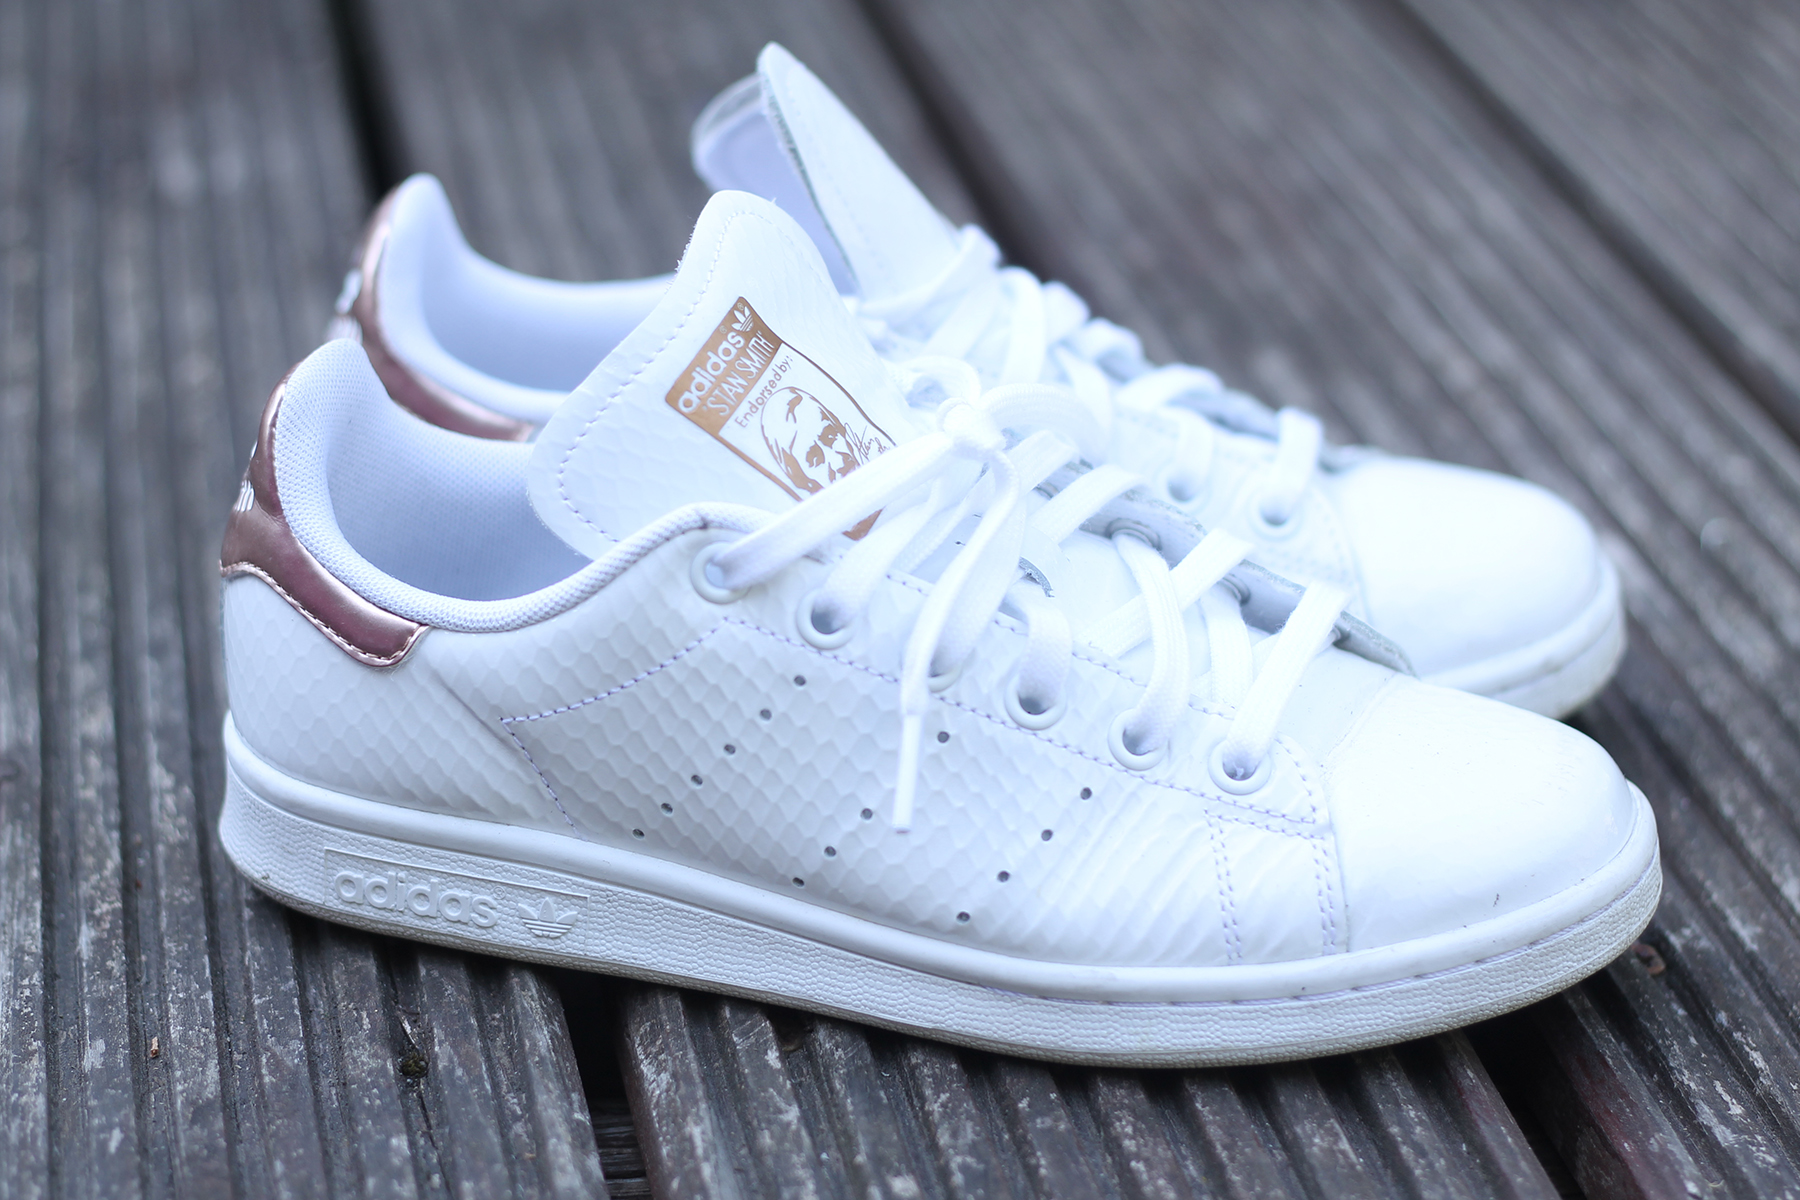 adidas-sneaker-rosegold-weiß-trend-modeblog-blogger-fashionblog-style